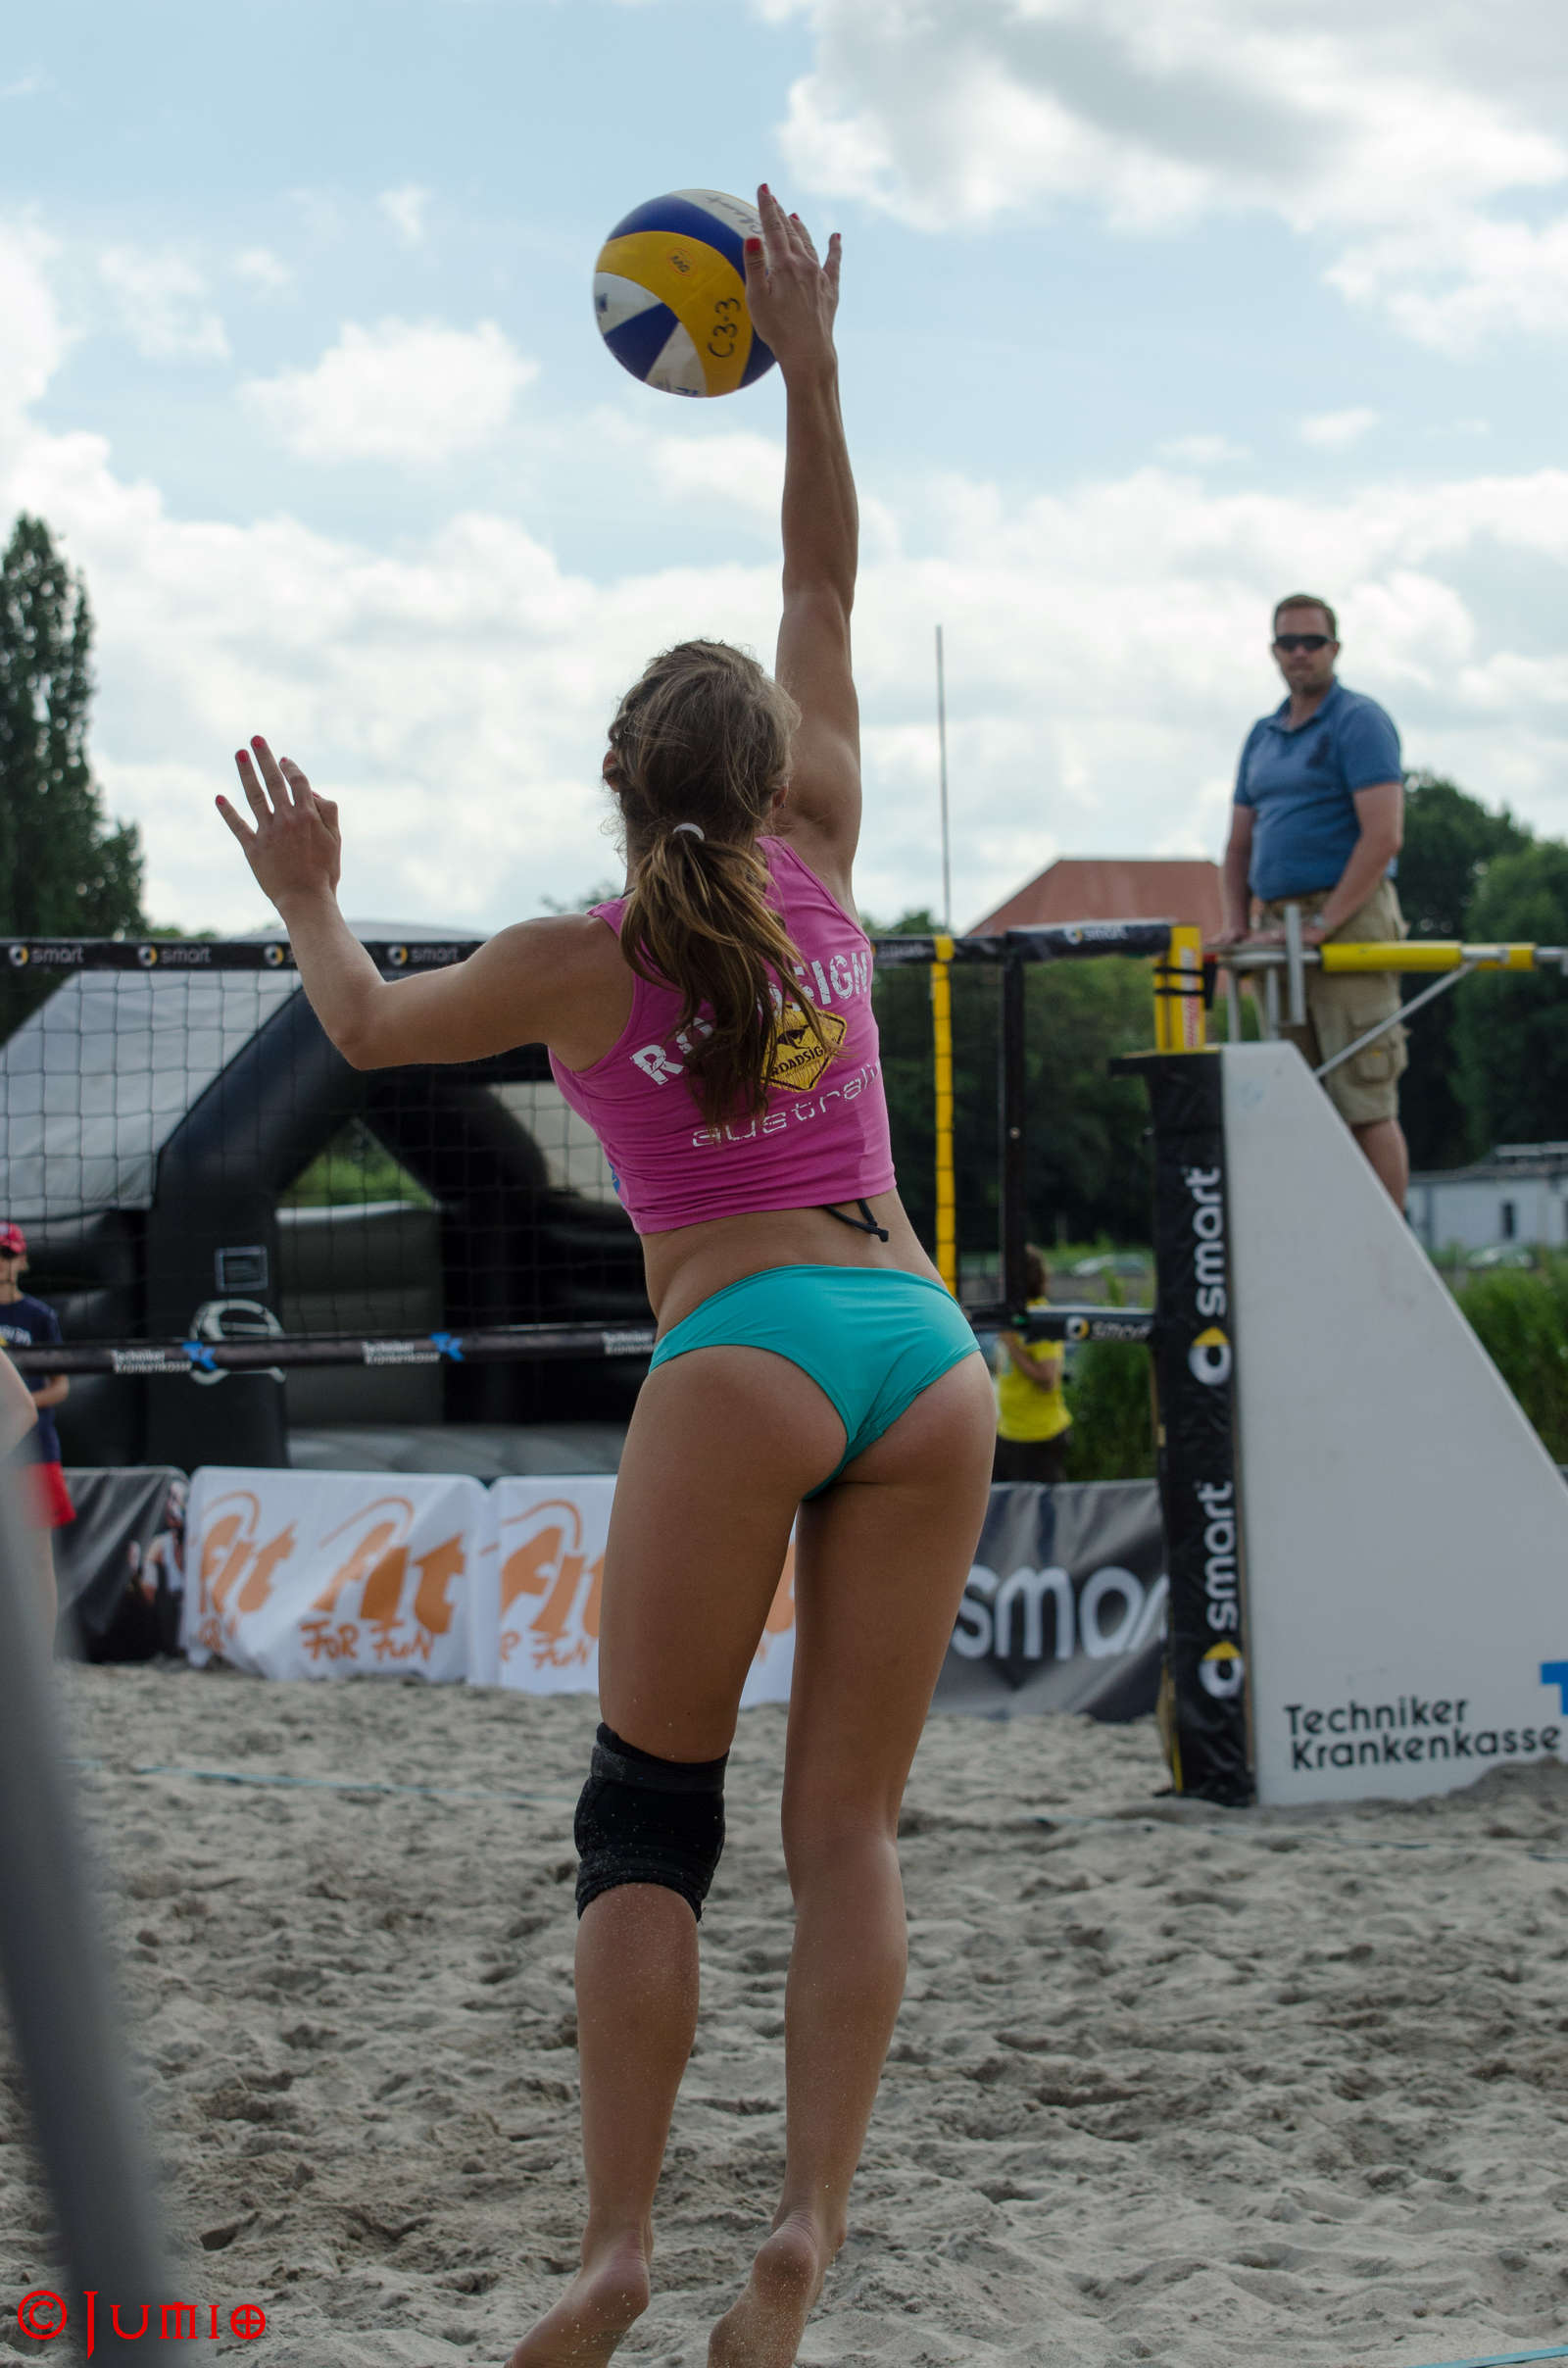 Smart Beach Tour 2012 - Vlec vs Friedrich - Heidelberg